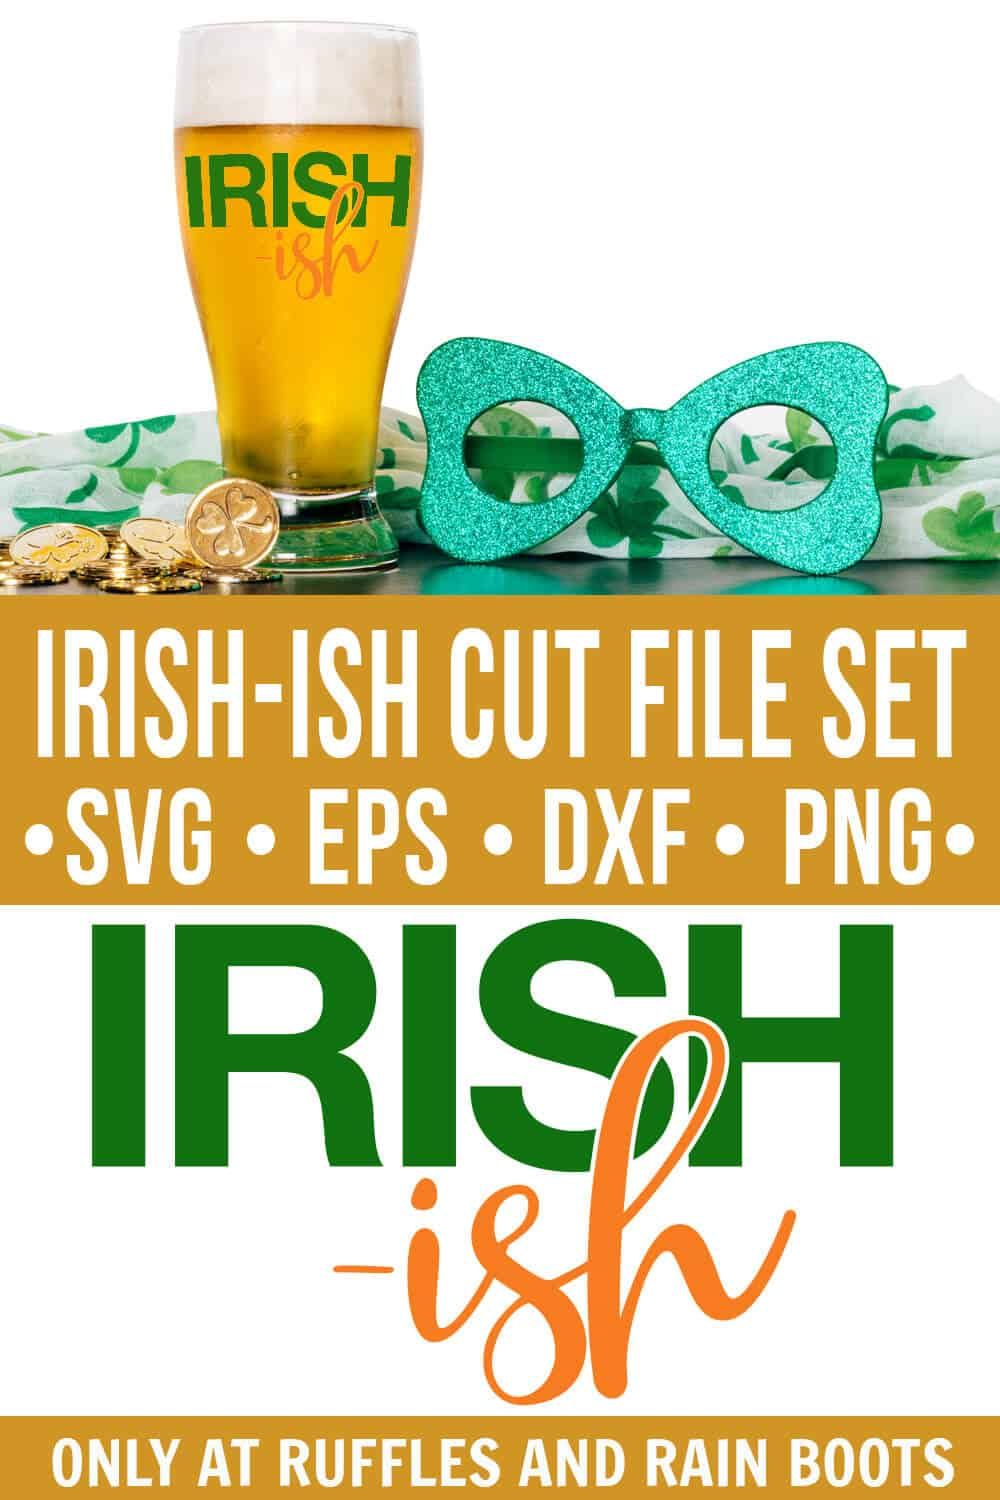 Irish-Ish SVG on beer glass with St Patricks Day decorations on wood table and text which reads Irish cut file set